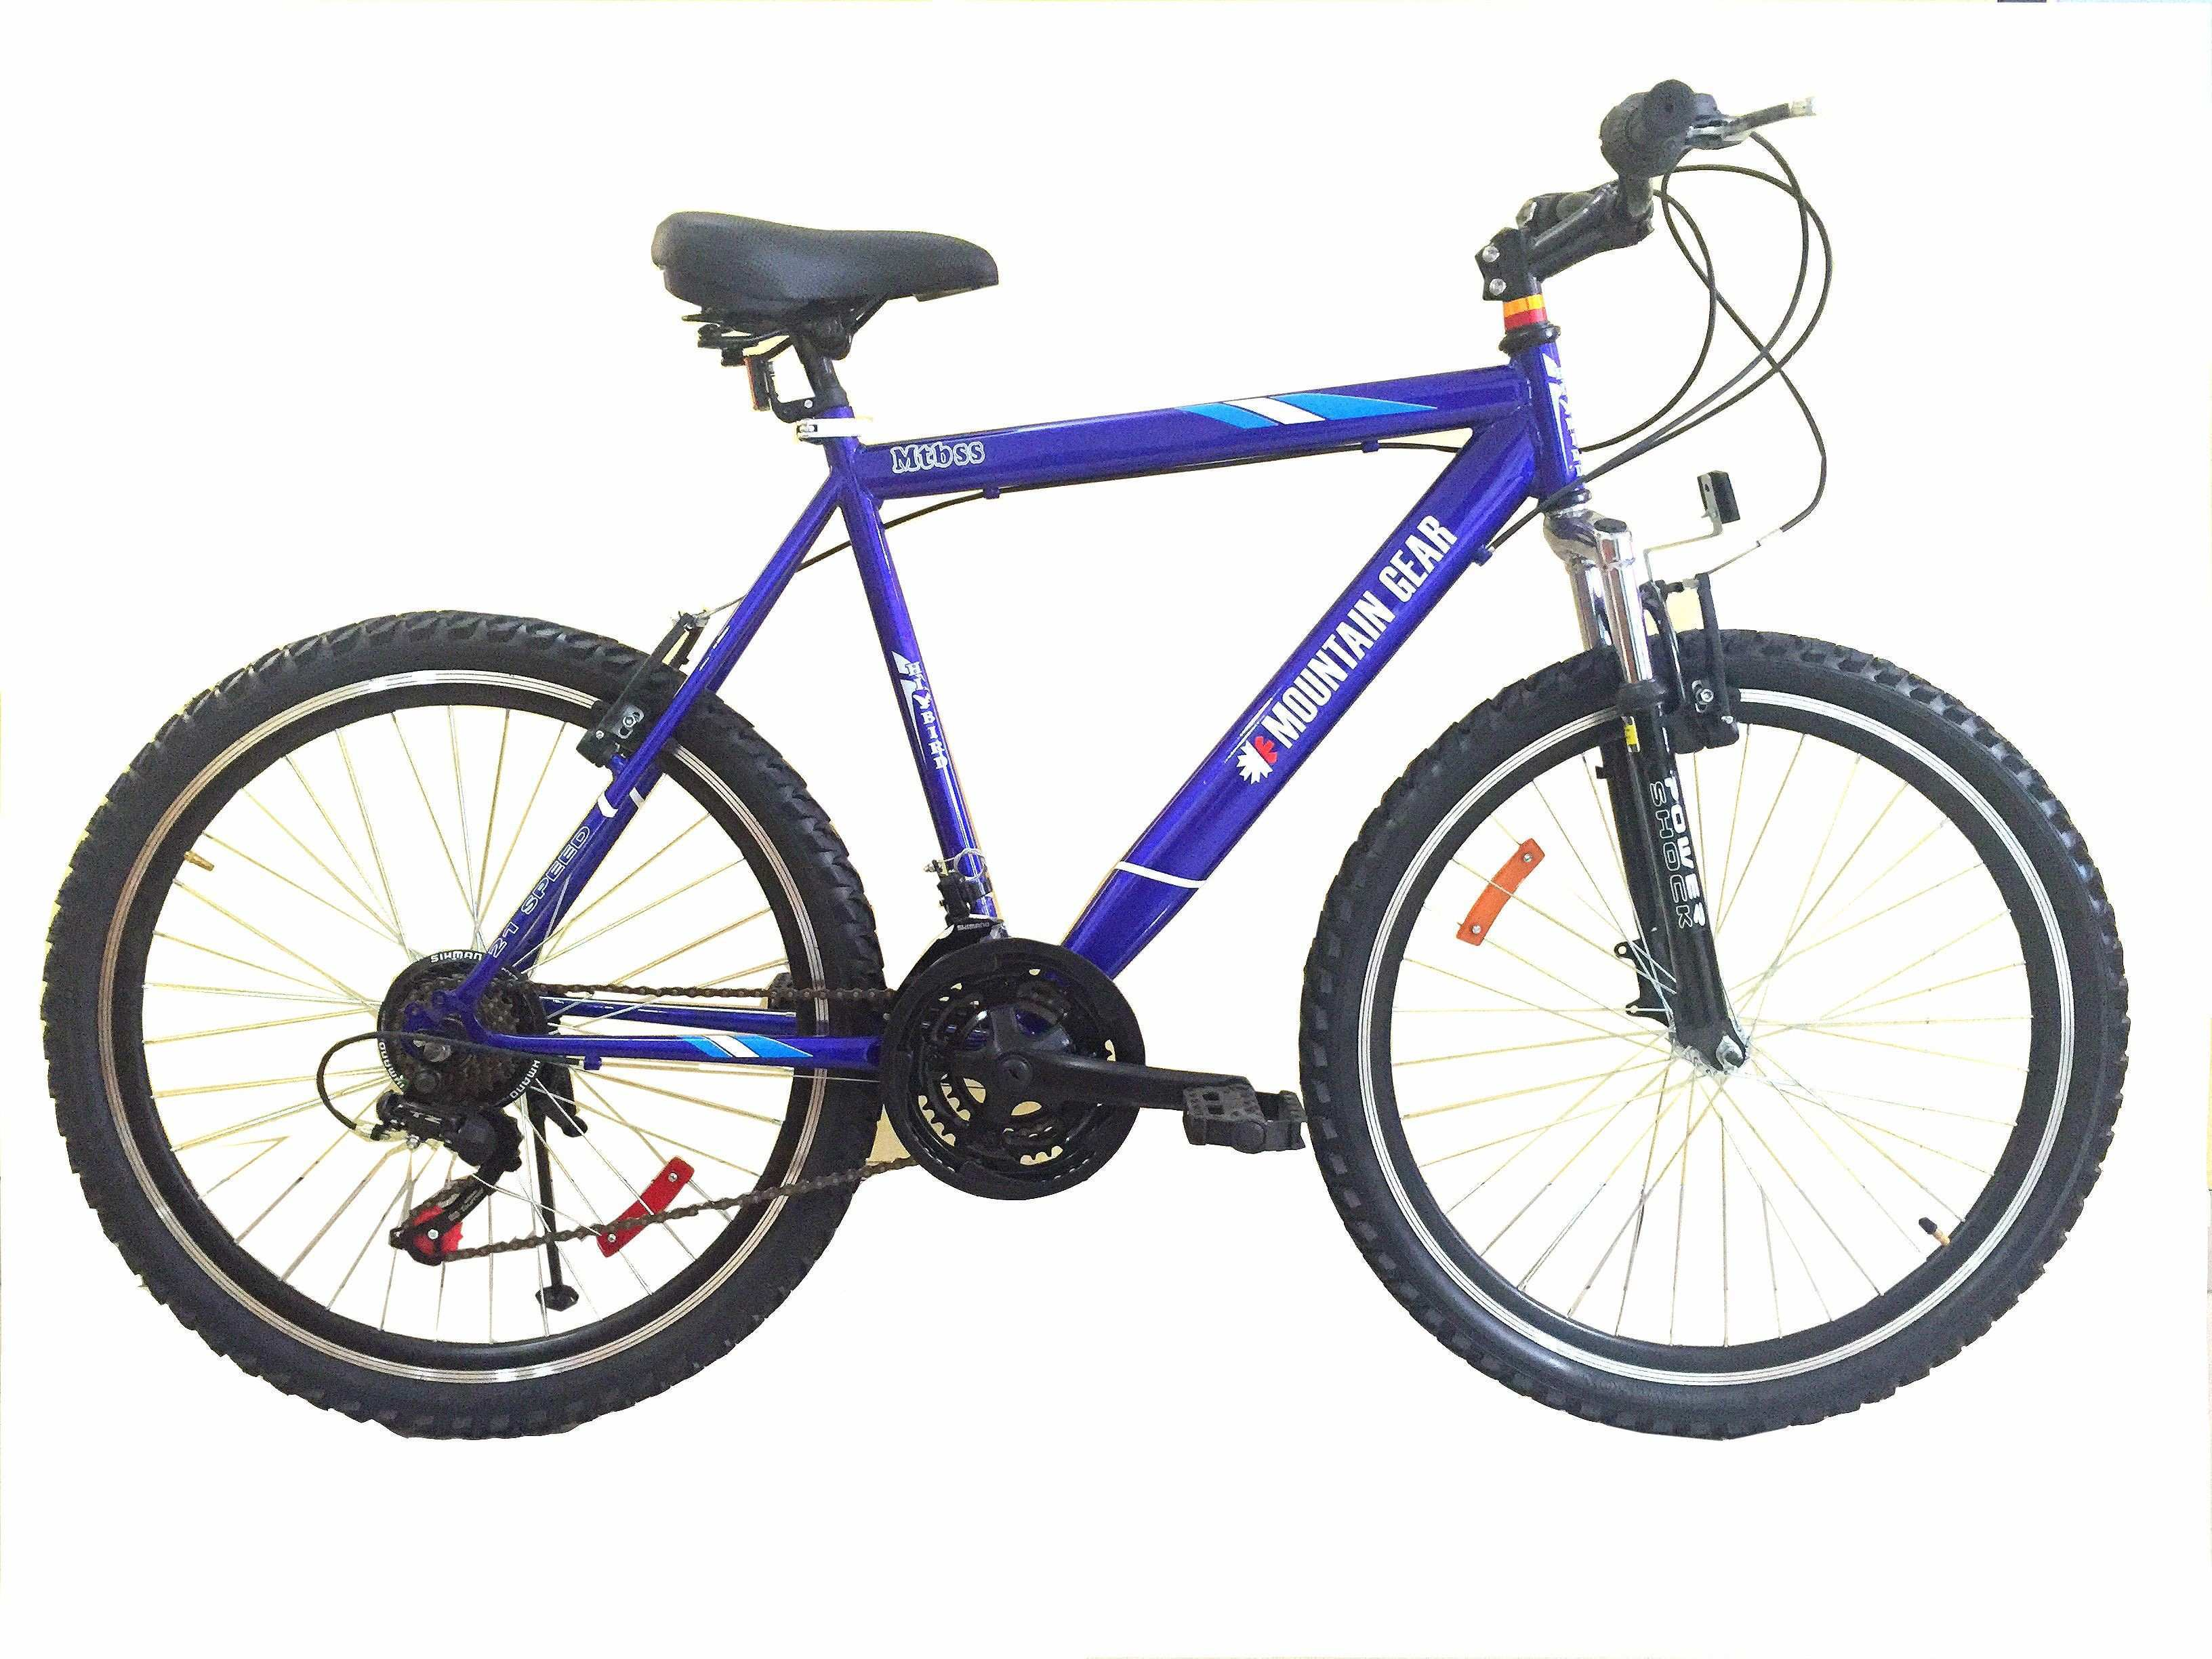 Hi Bird MTB Ss 21 Speed Bicycle 26 Inch Buy line at Best Price on